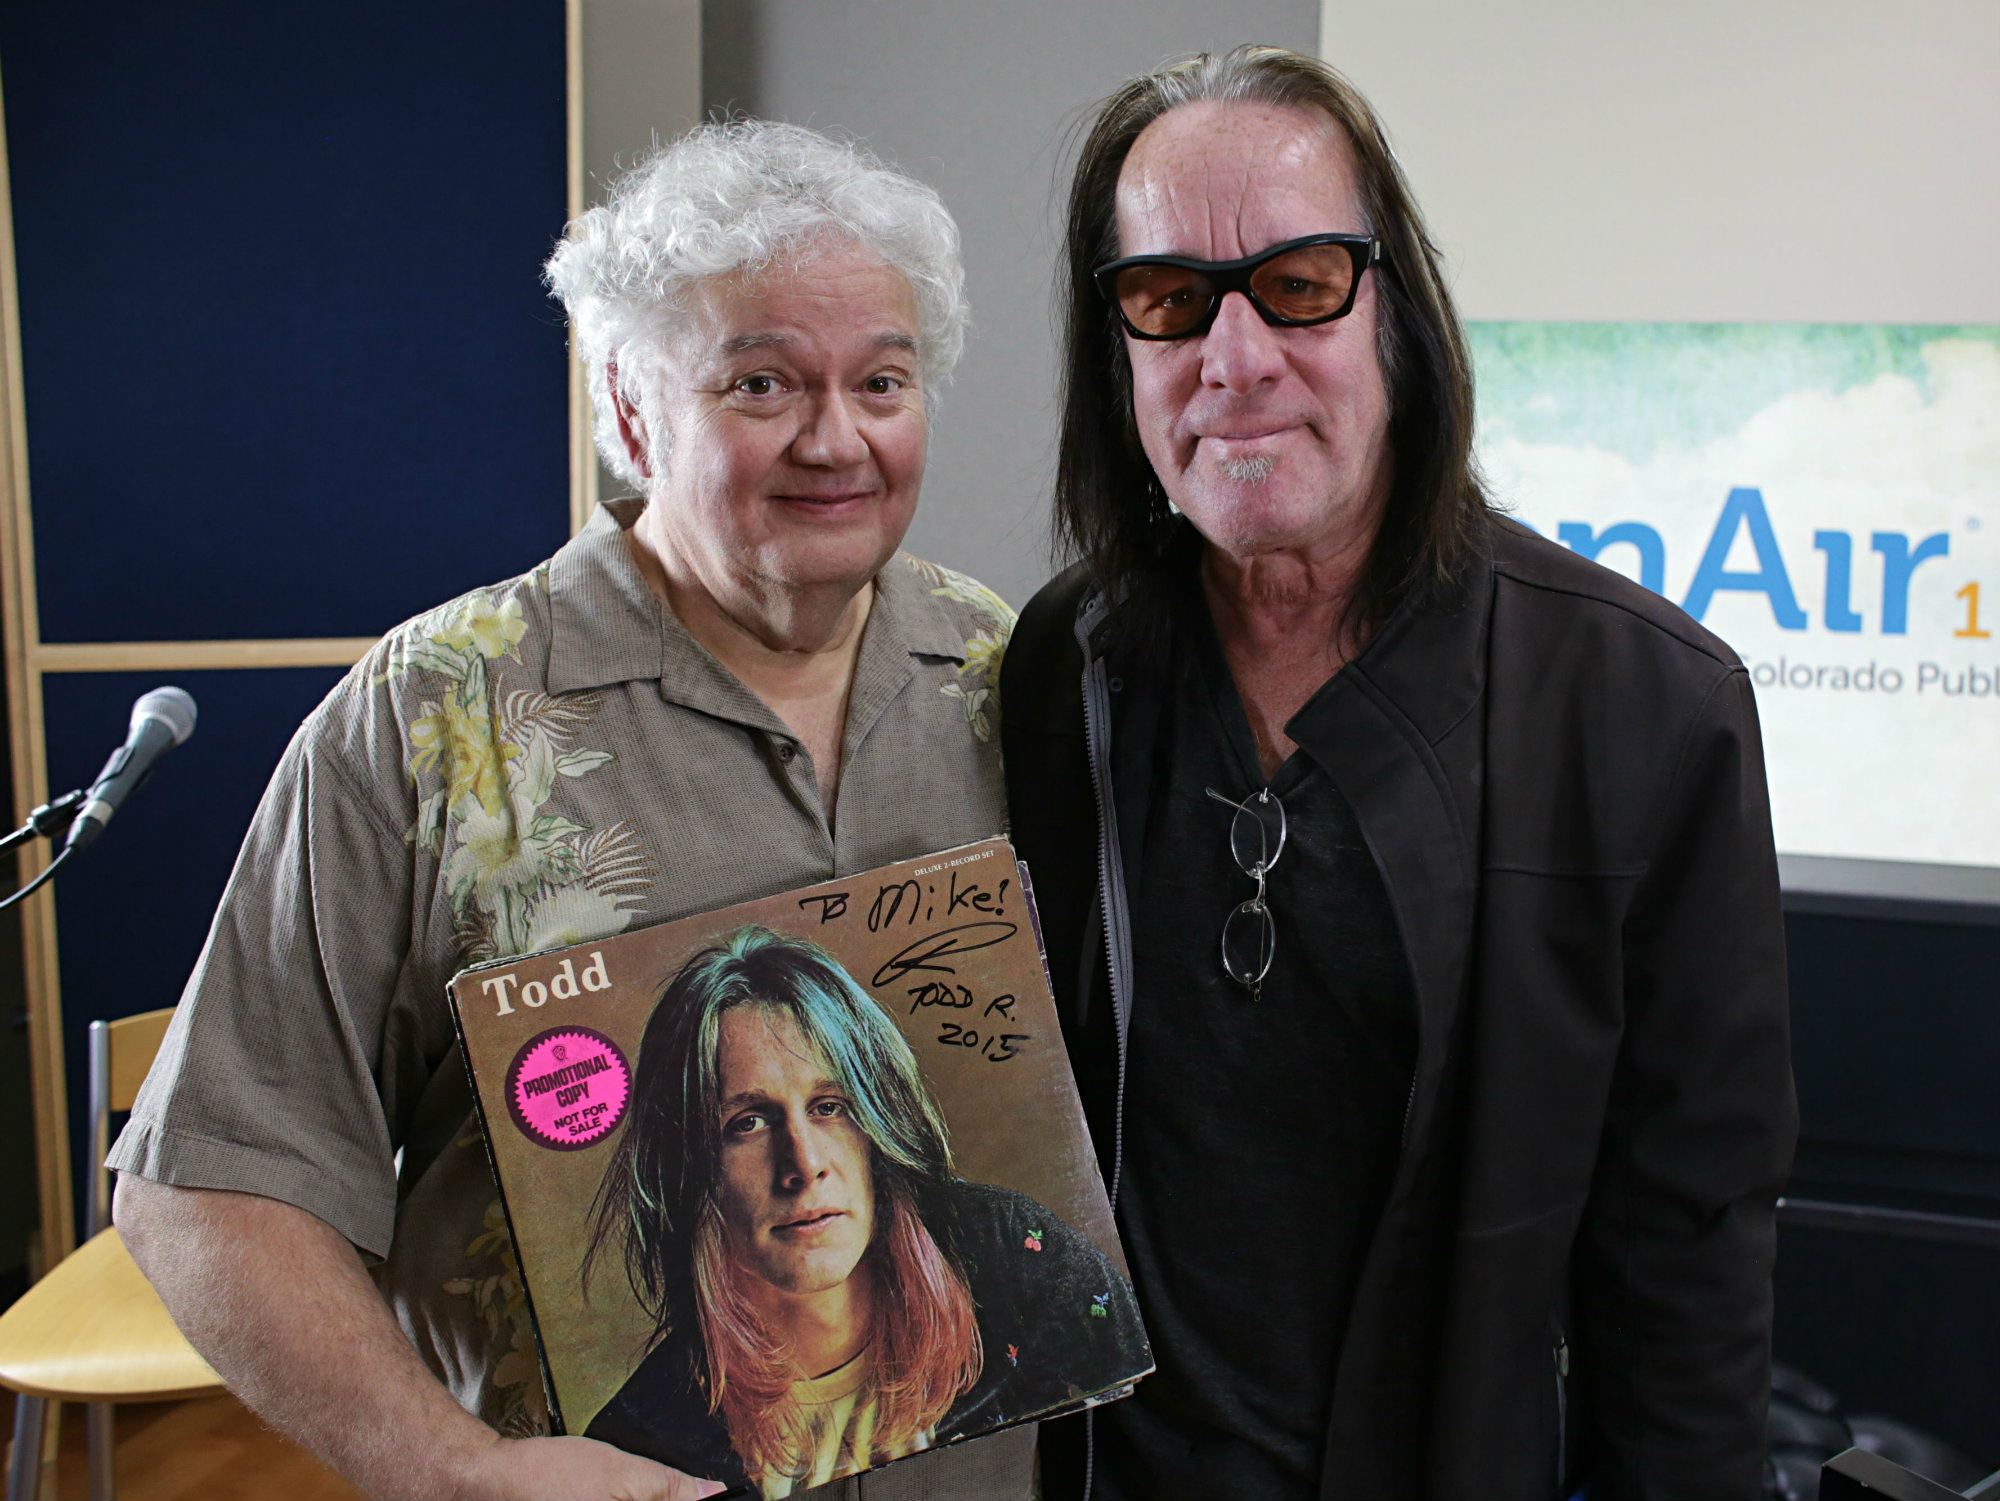 Photo: Mike Flanagan and Todd Rundgren